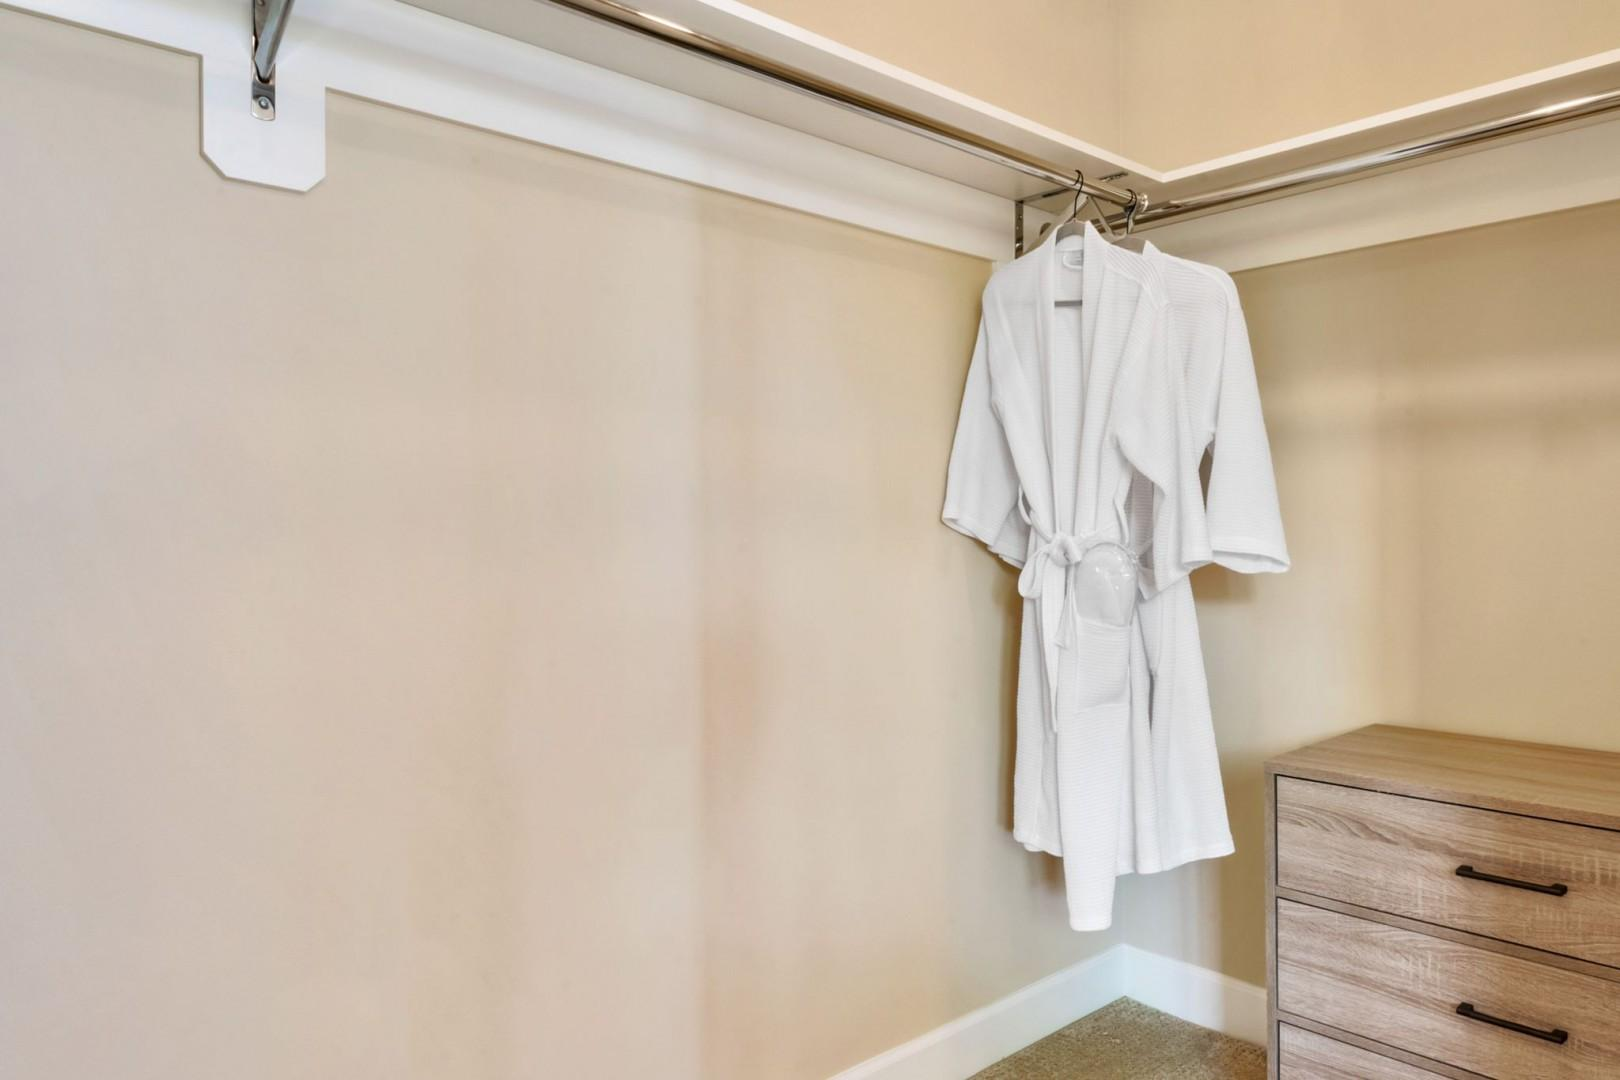 Robes can be found in the closets